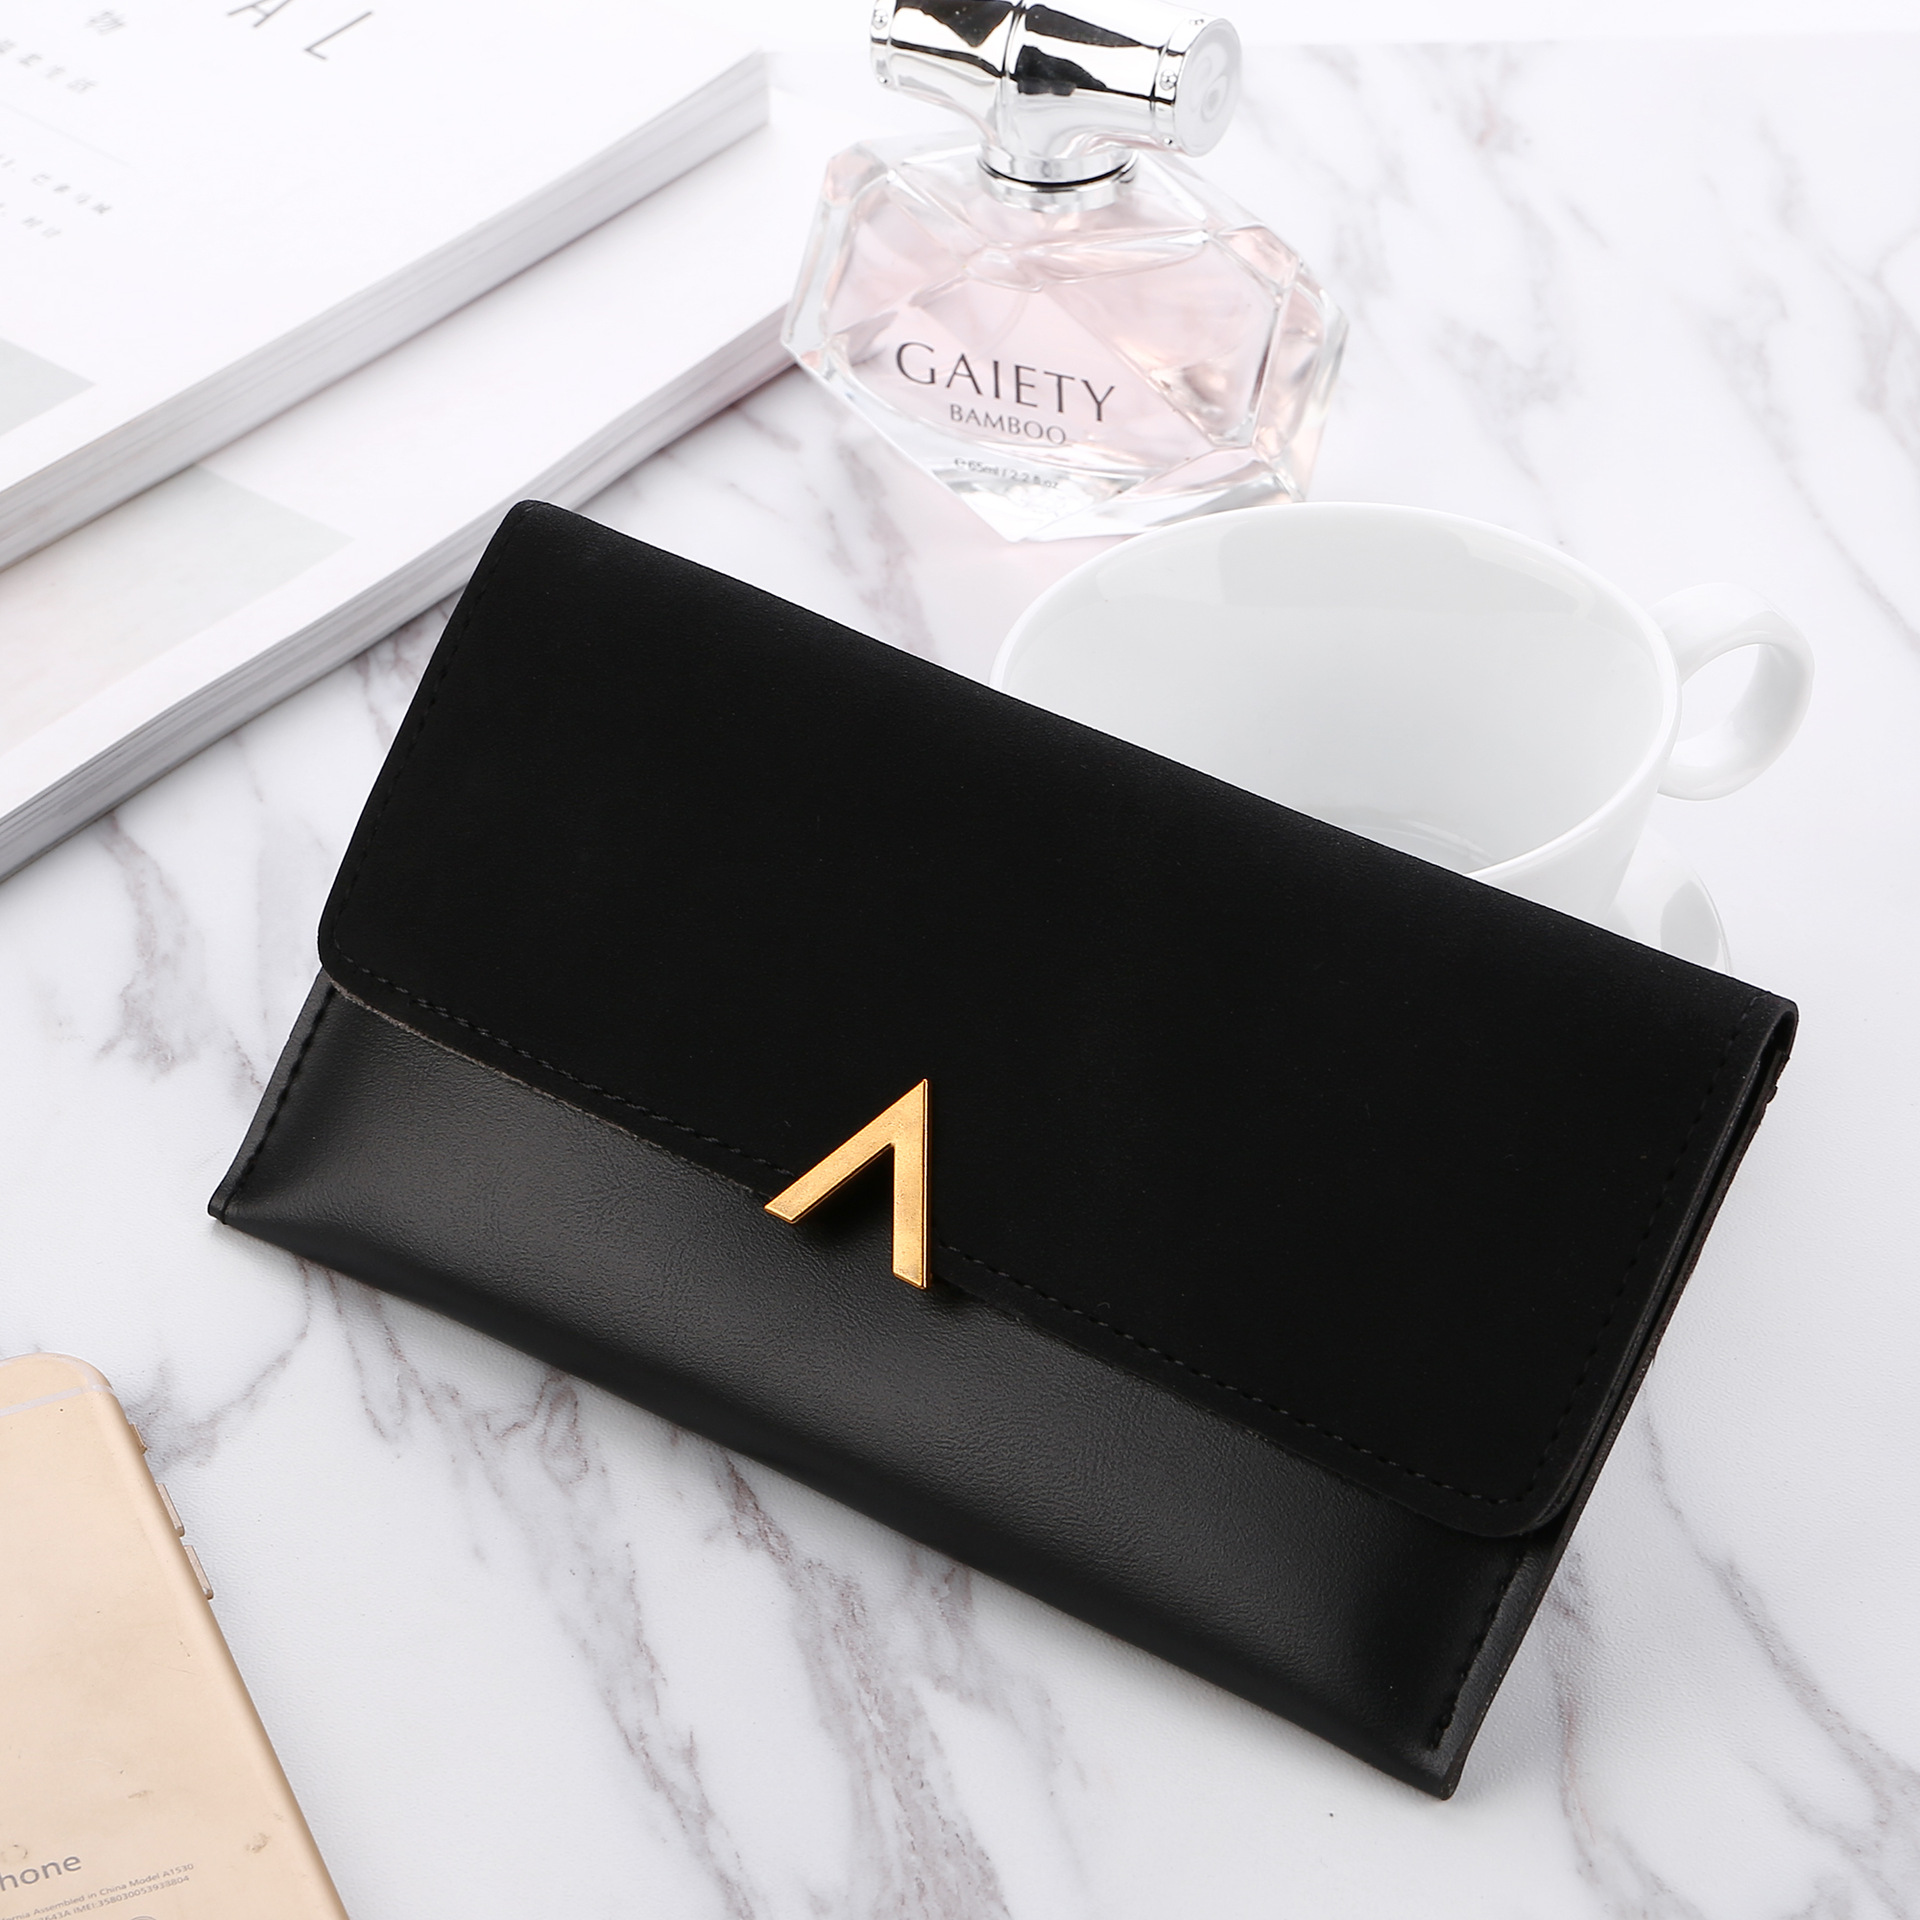 2020 Leather Women Wallets Hasp Lady Moneybags Zipper Coin Purse Woman Envelope Wallet Money Cards ID Holder Bags Purses Pocket